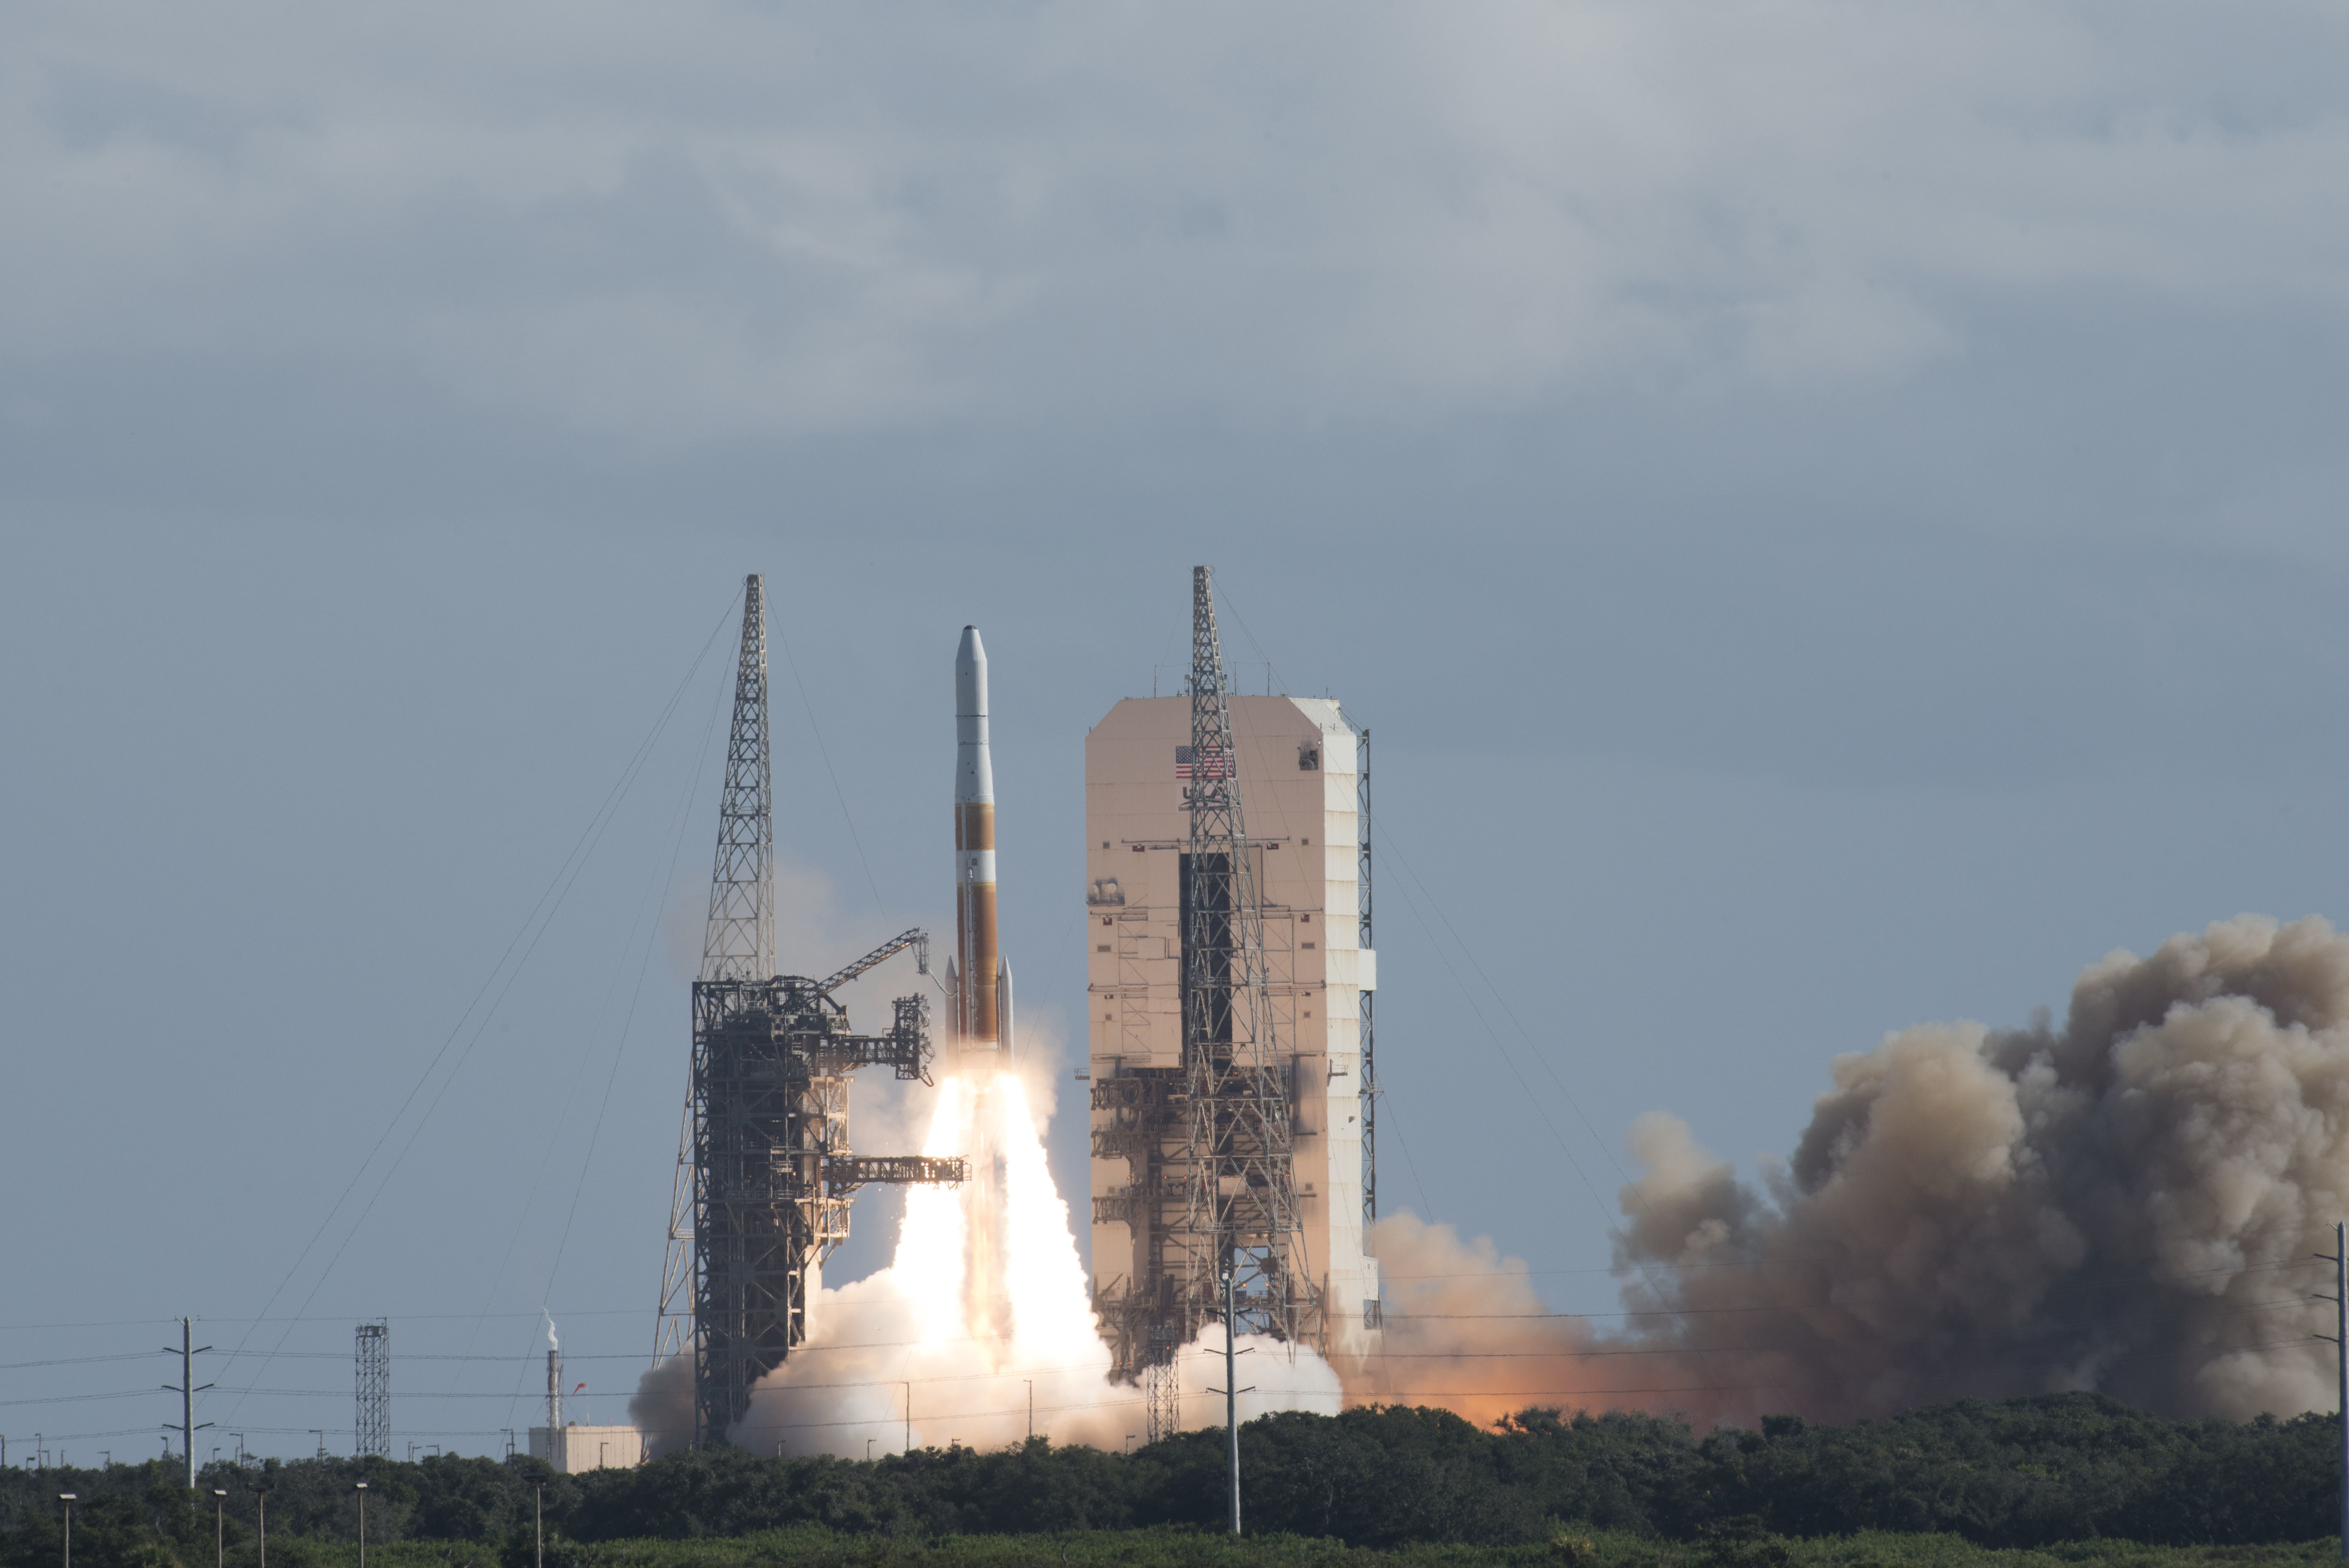 United Launch Alliance's Delta IV GPS III Magellan rocket launches from Cape Canaveral Air Force Station, Fla., on Aug. 22, 2019. (Airman 1st Class Dalton Williams/U.S. Air Force)